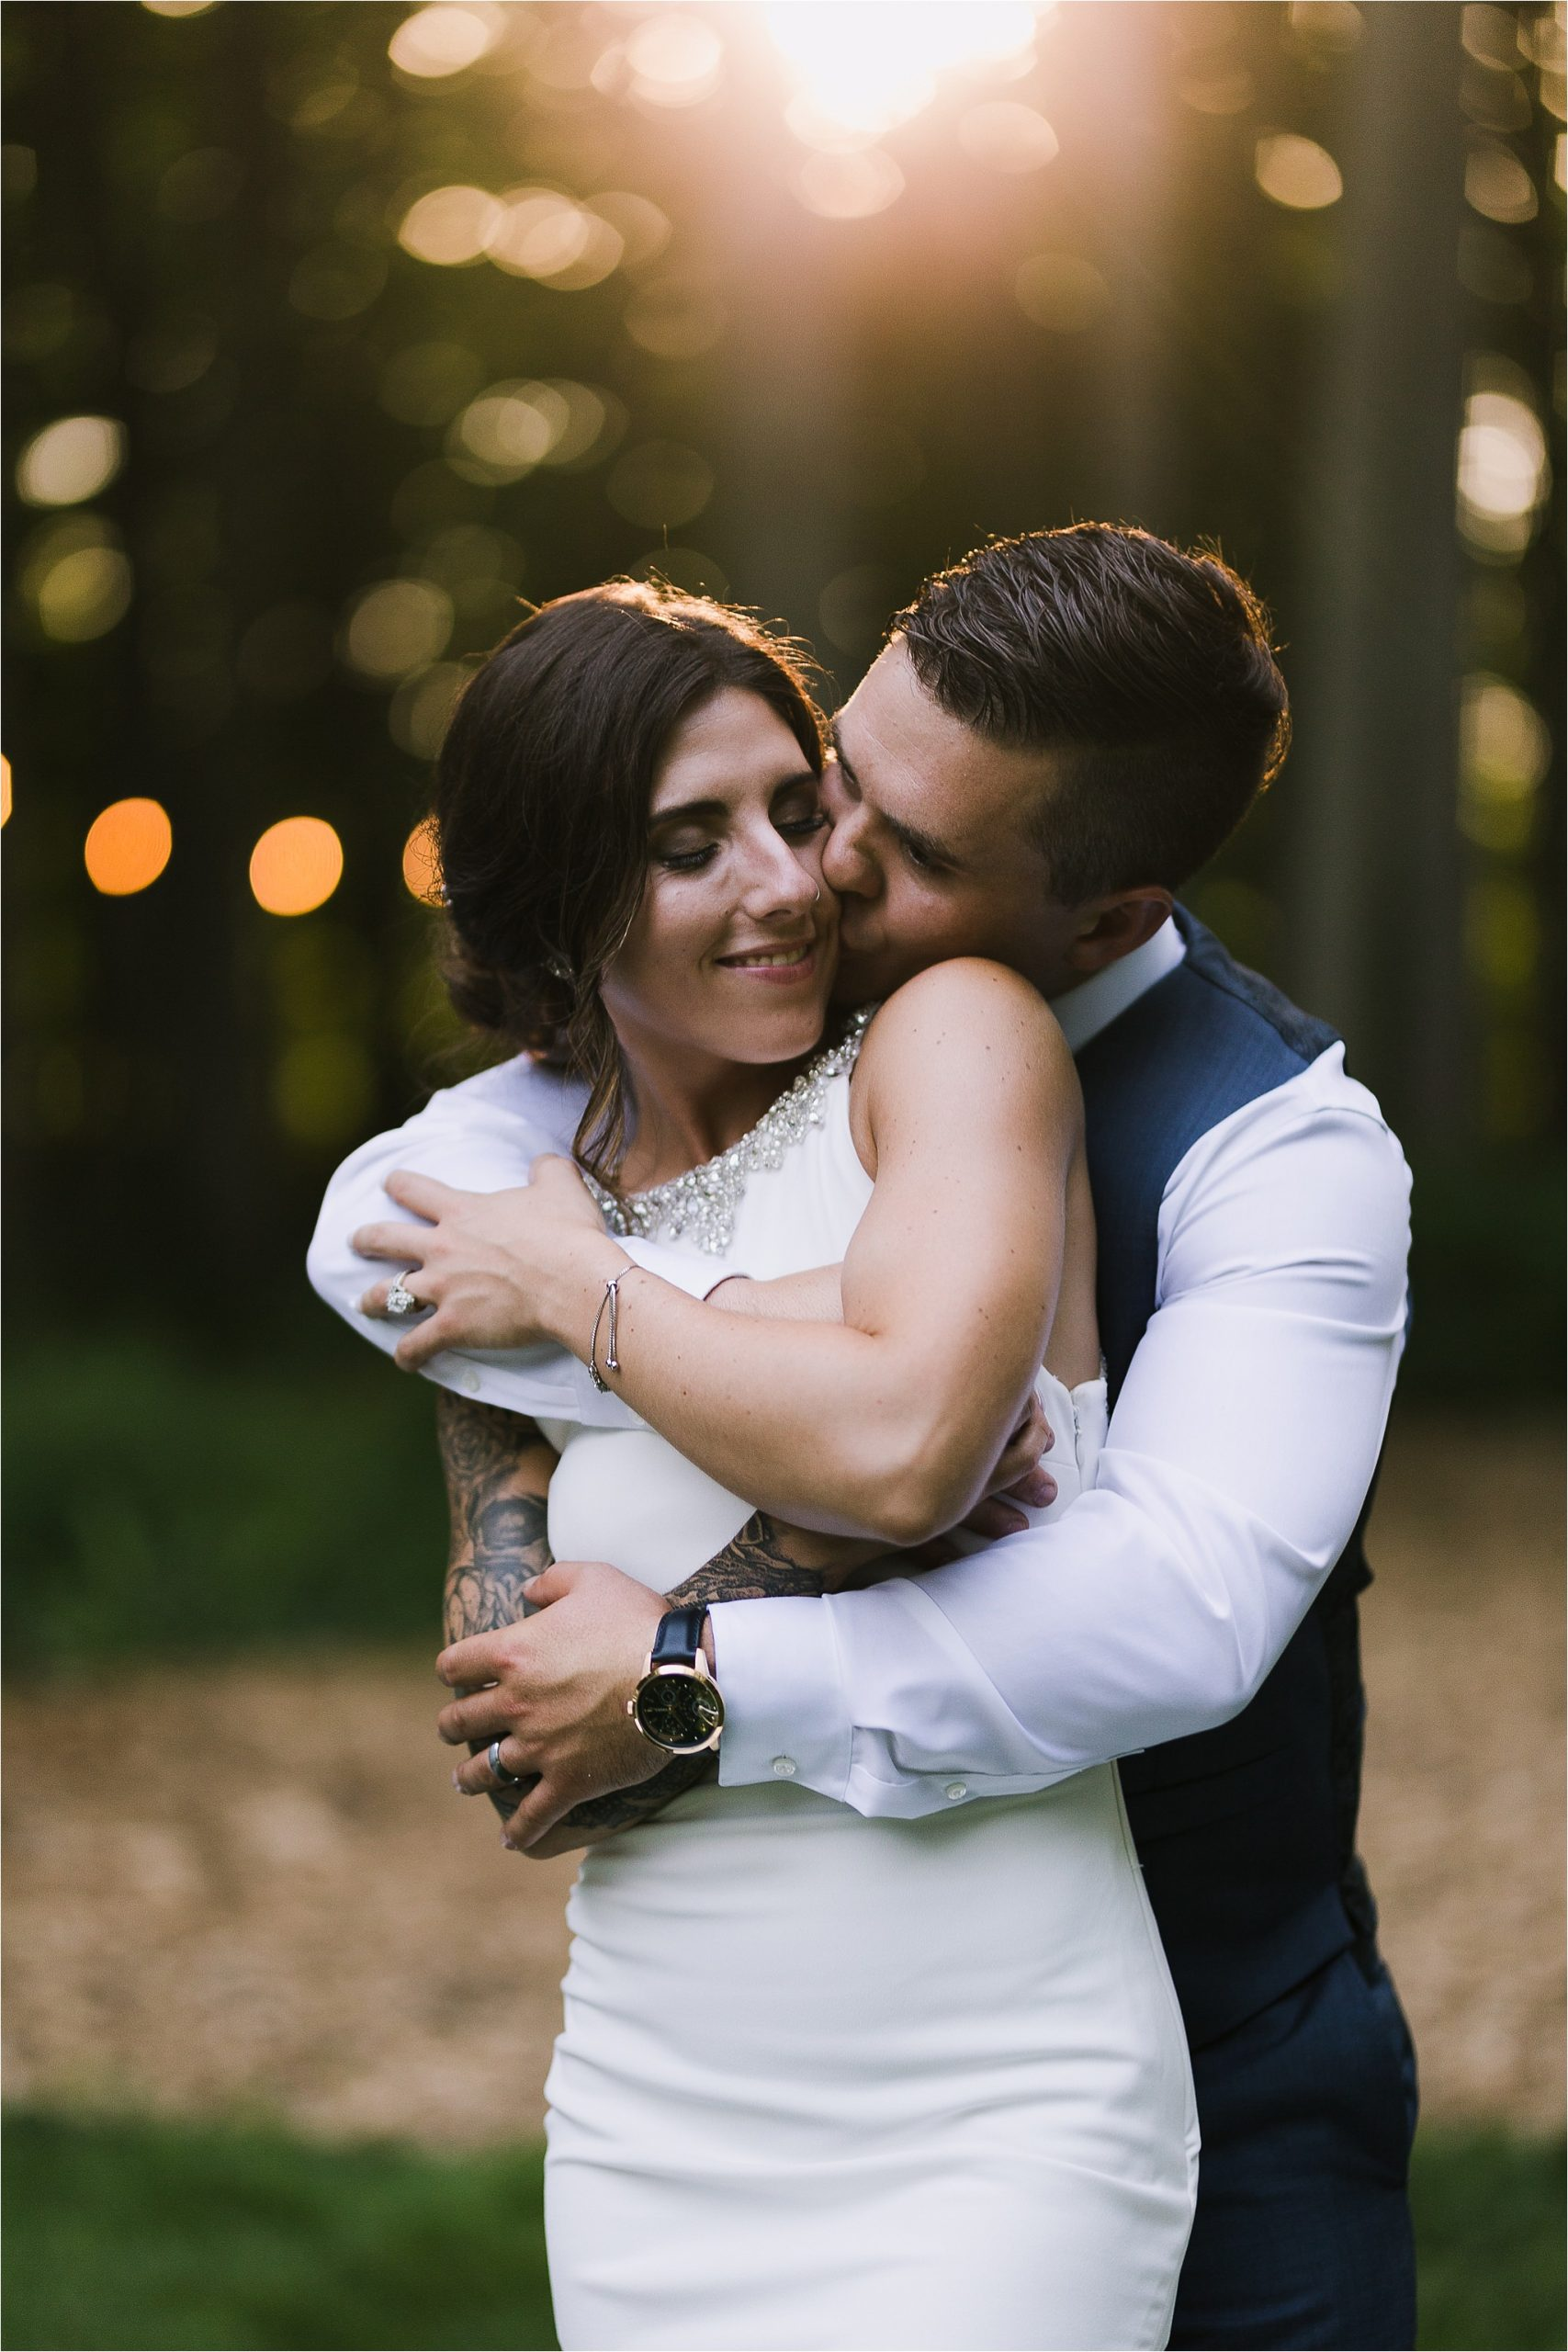 Sonia V Photography, The Clearing reception wedding venue, sunset golden hour bride and groom portraits